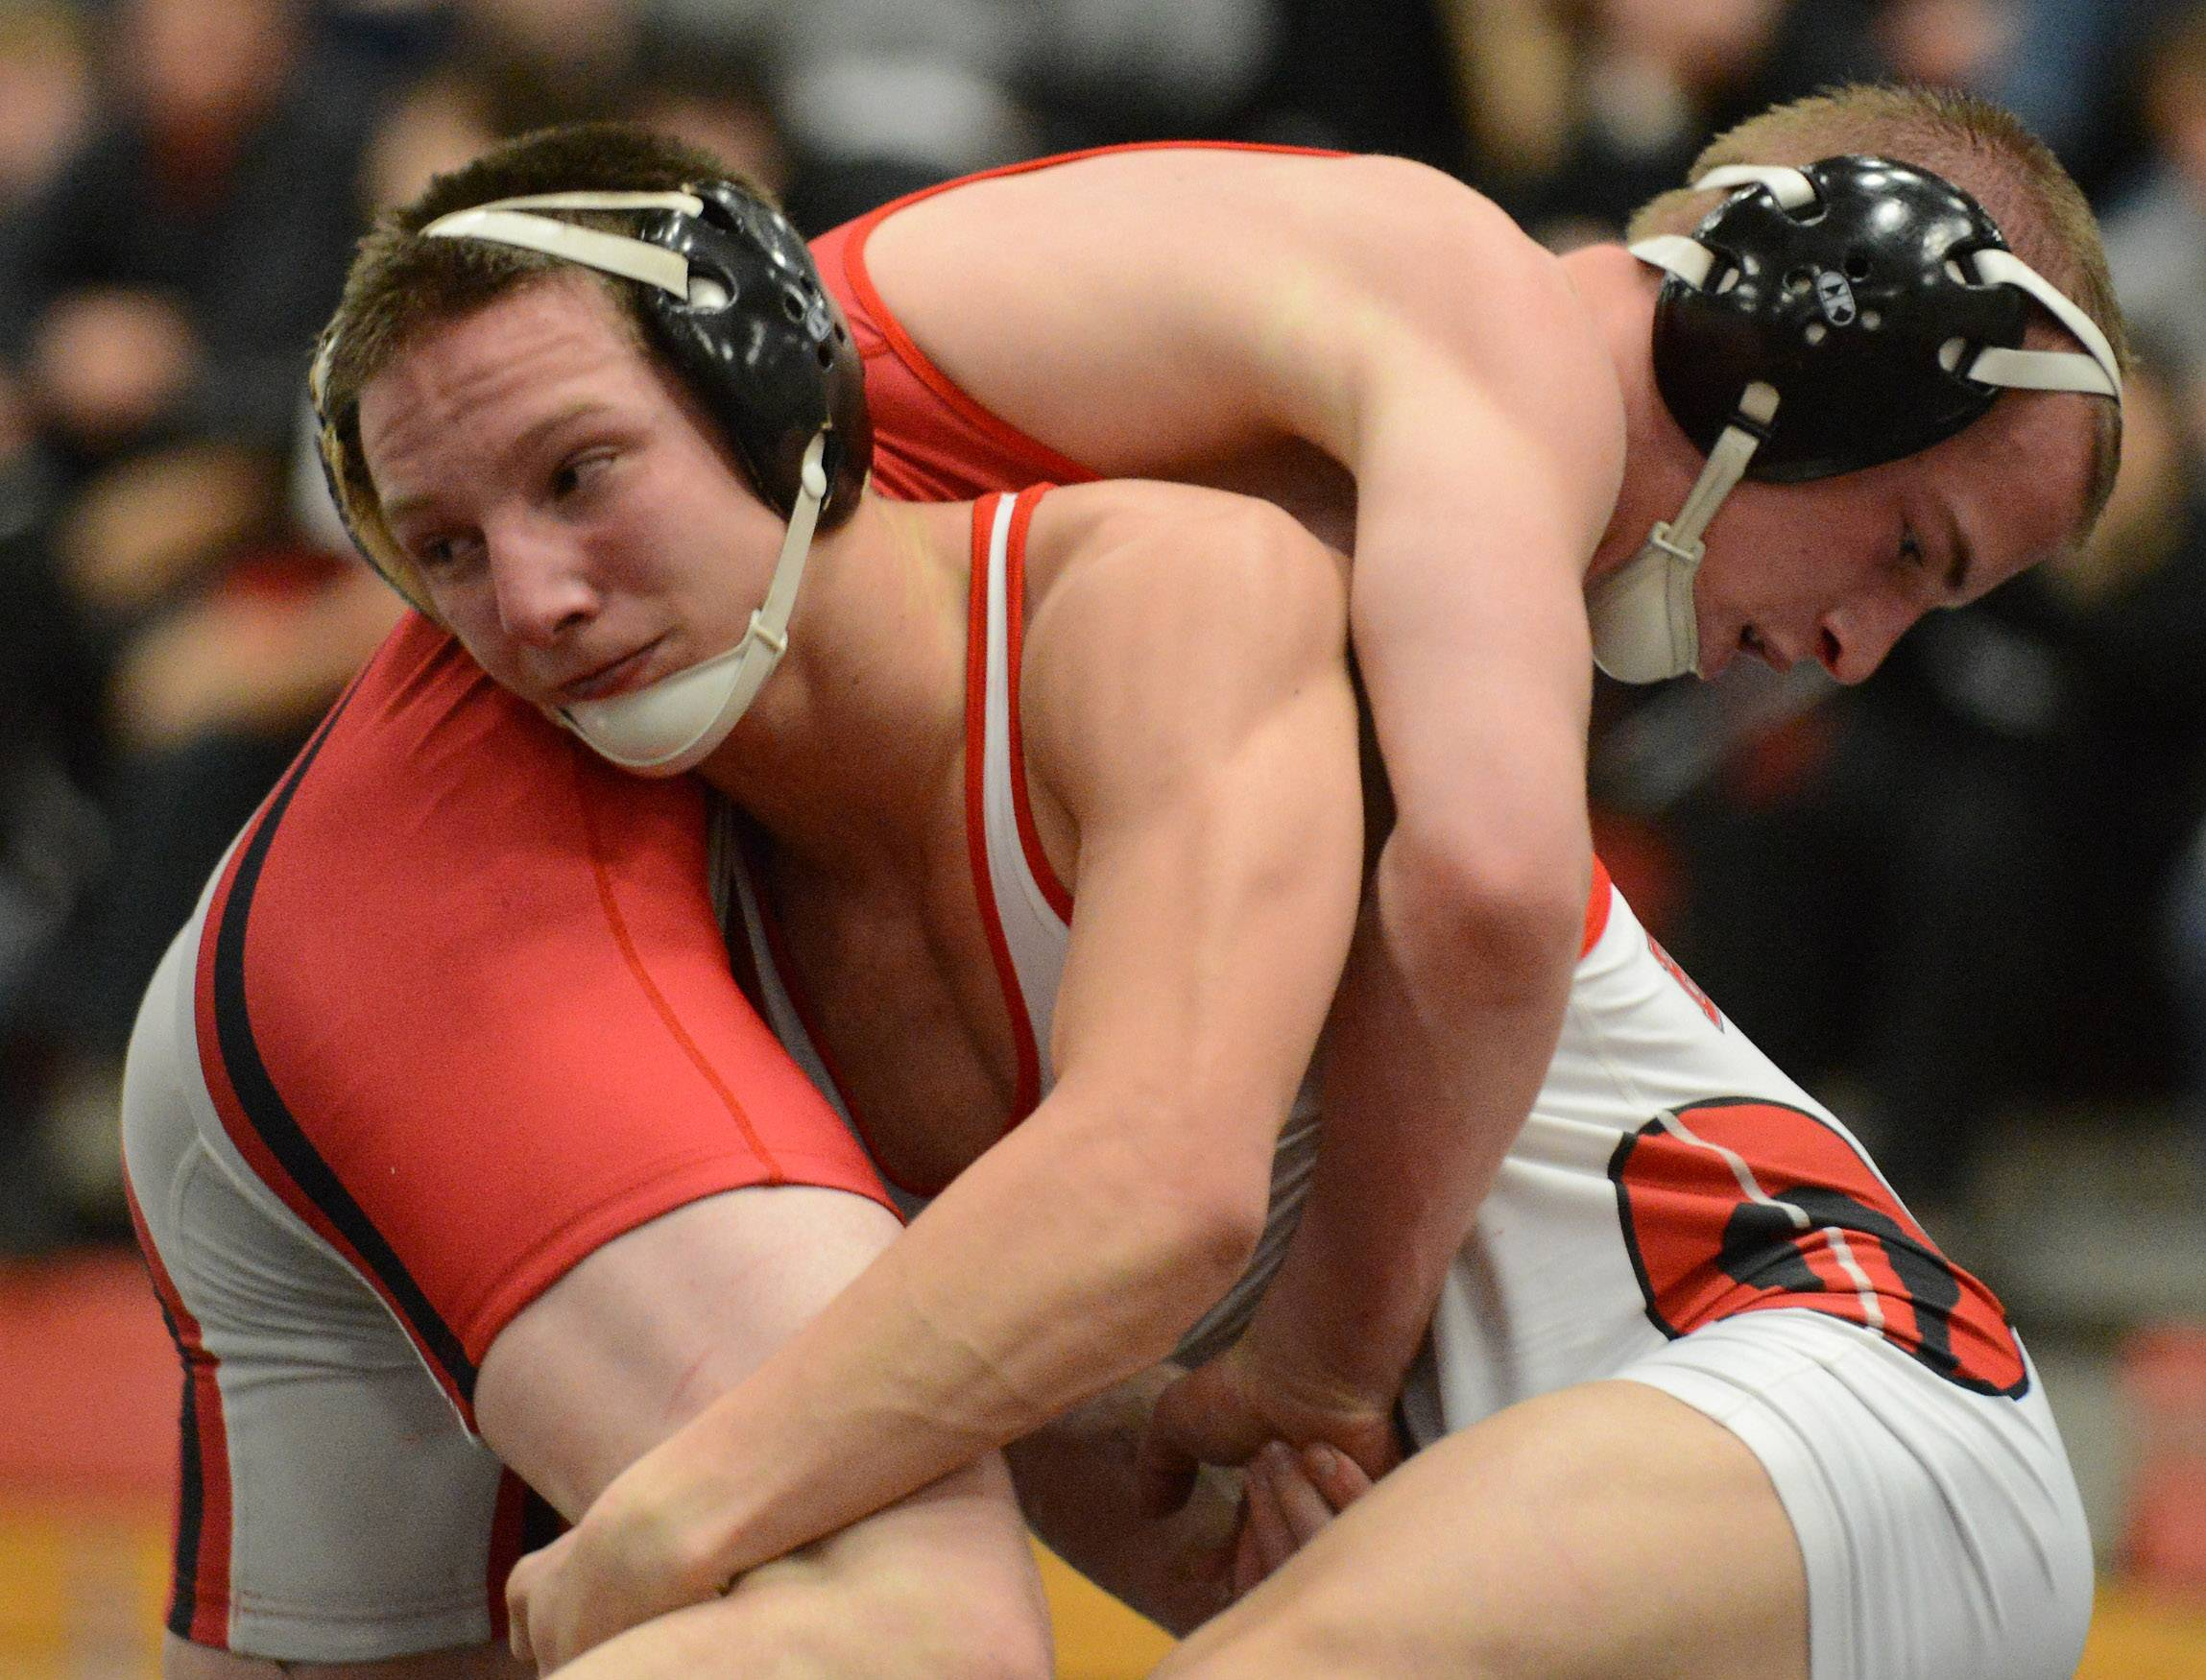 Barrington's Matt Conrad, in red, takes on Troy Parent of Grant in the 132-pound final in Barrington on Saturday.